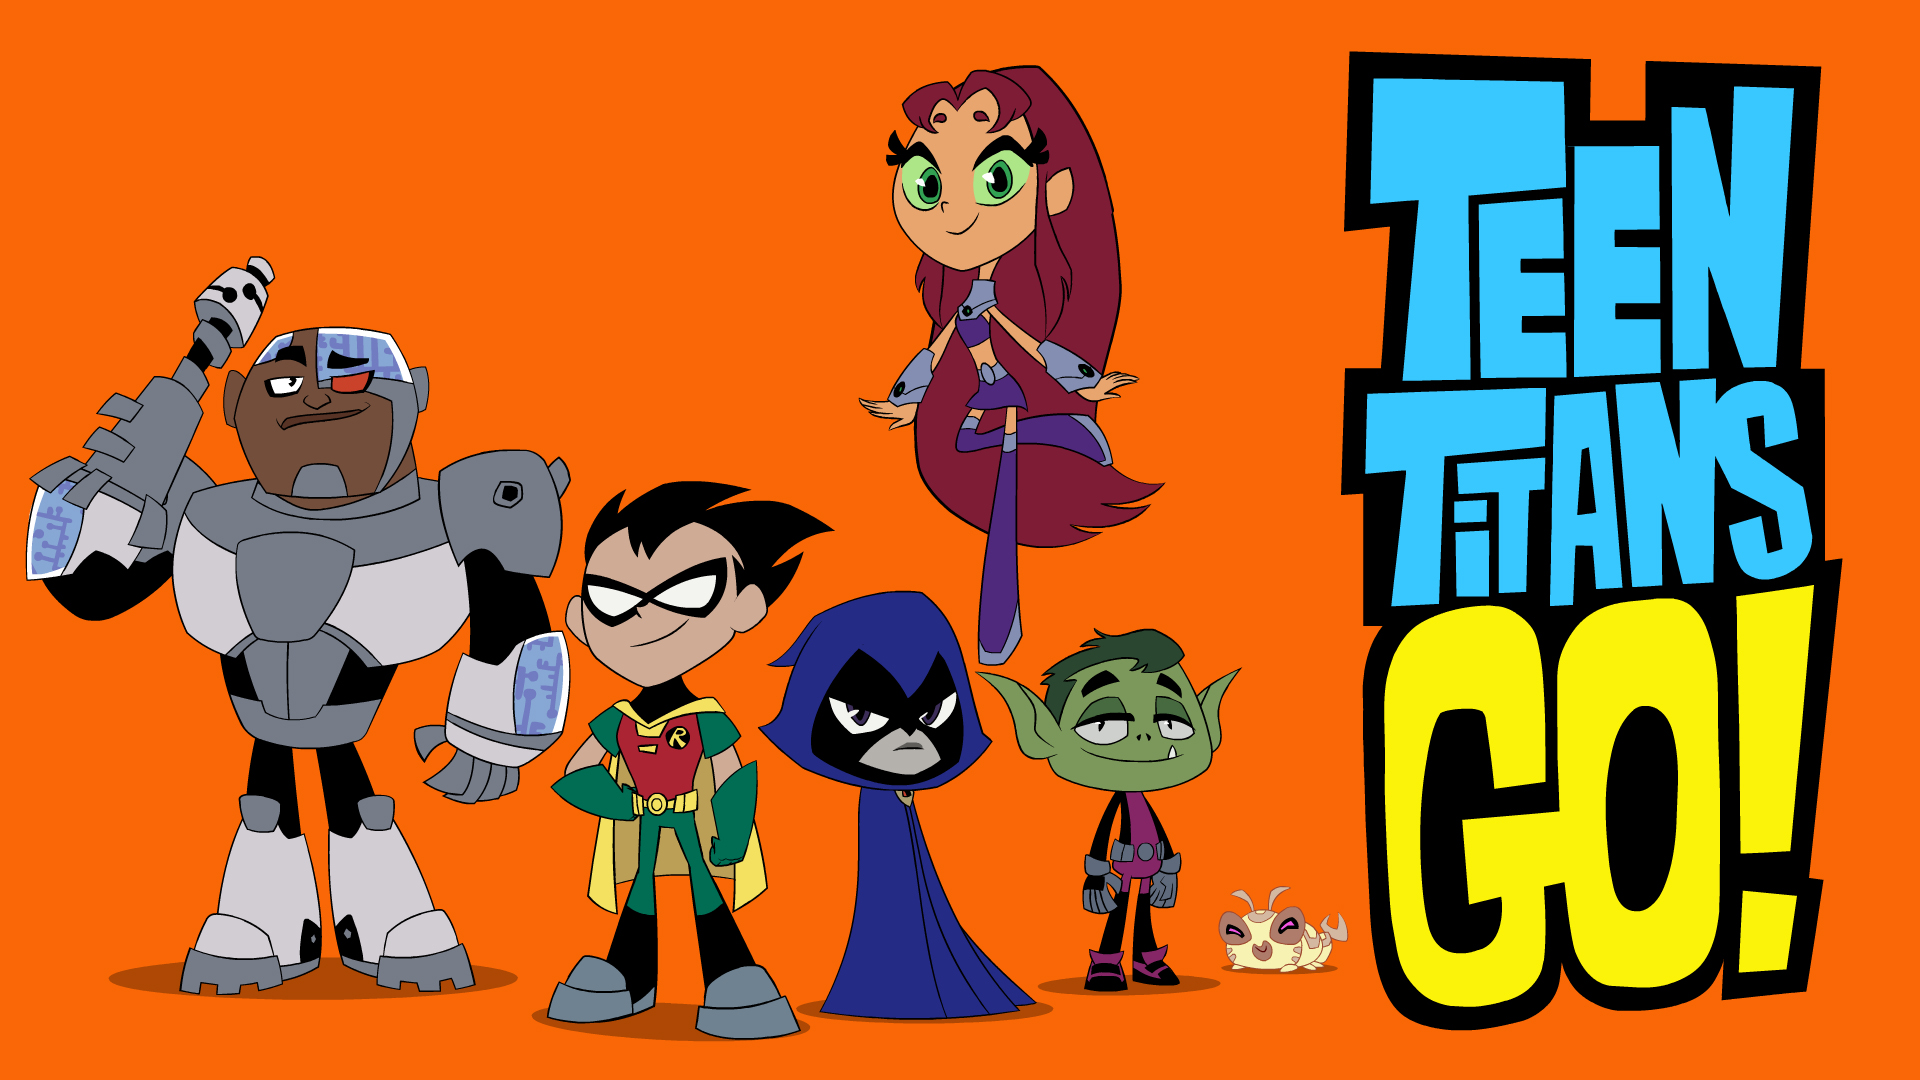 Teen titans teen titans d what from